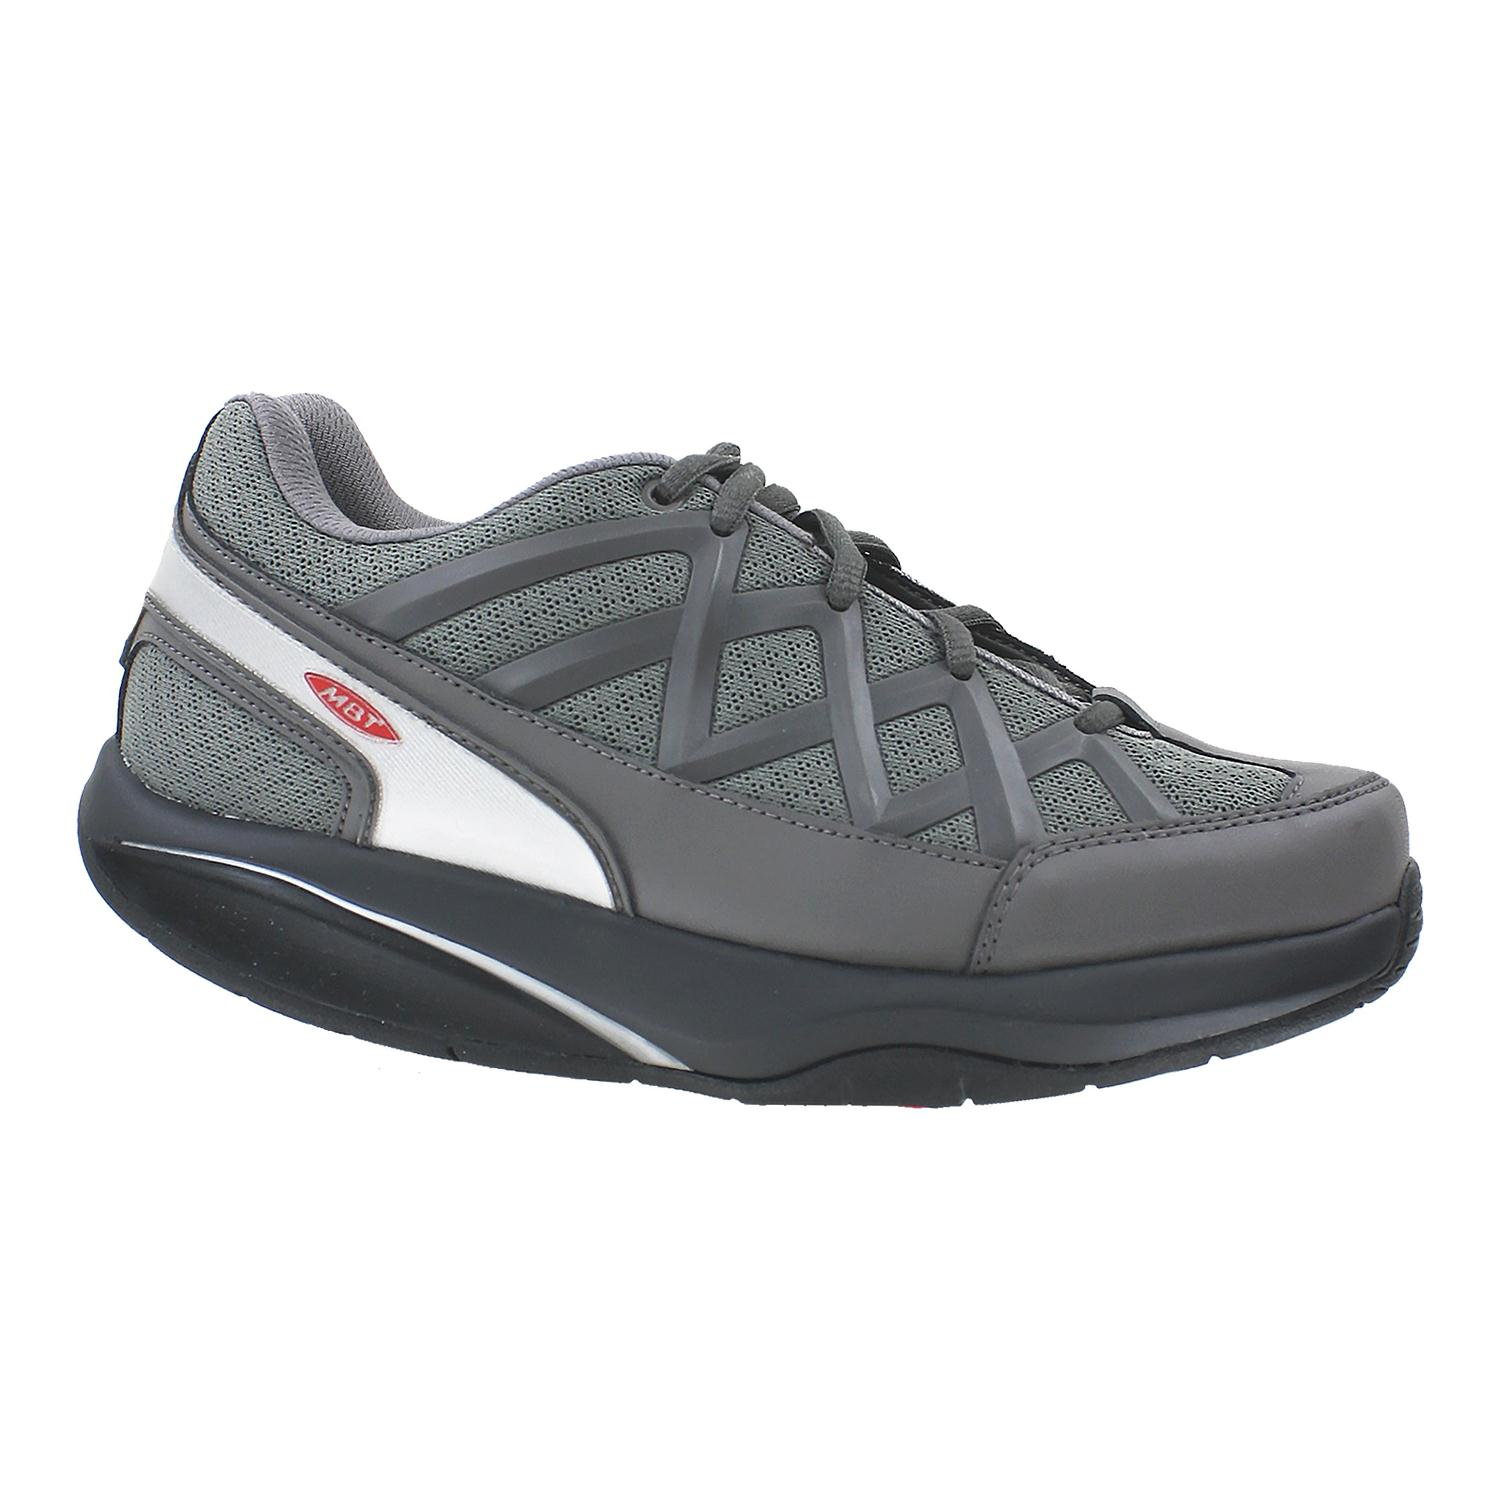 mbt s sport 3 leather mesh walking shoes 400335 184